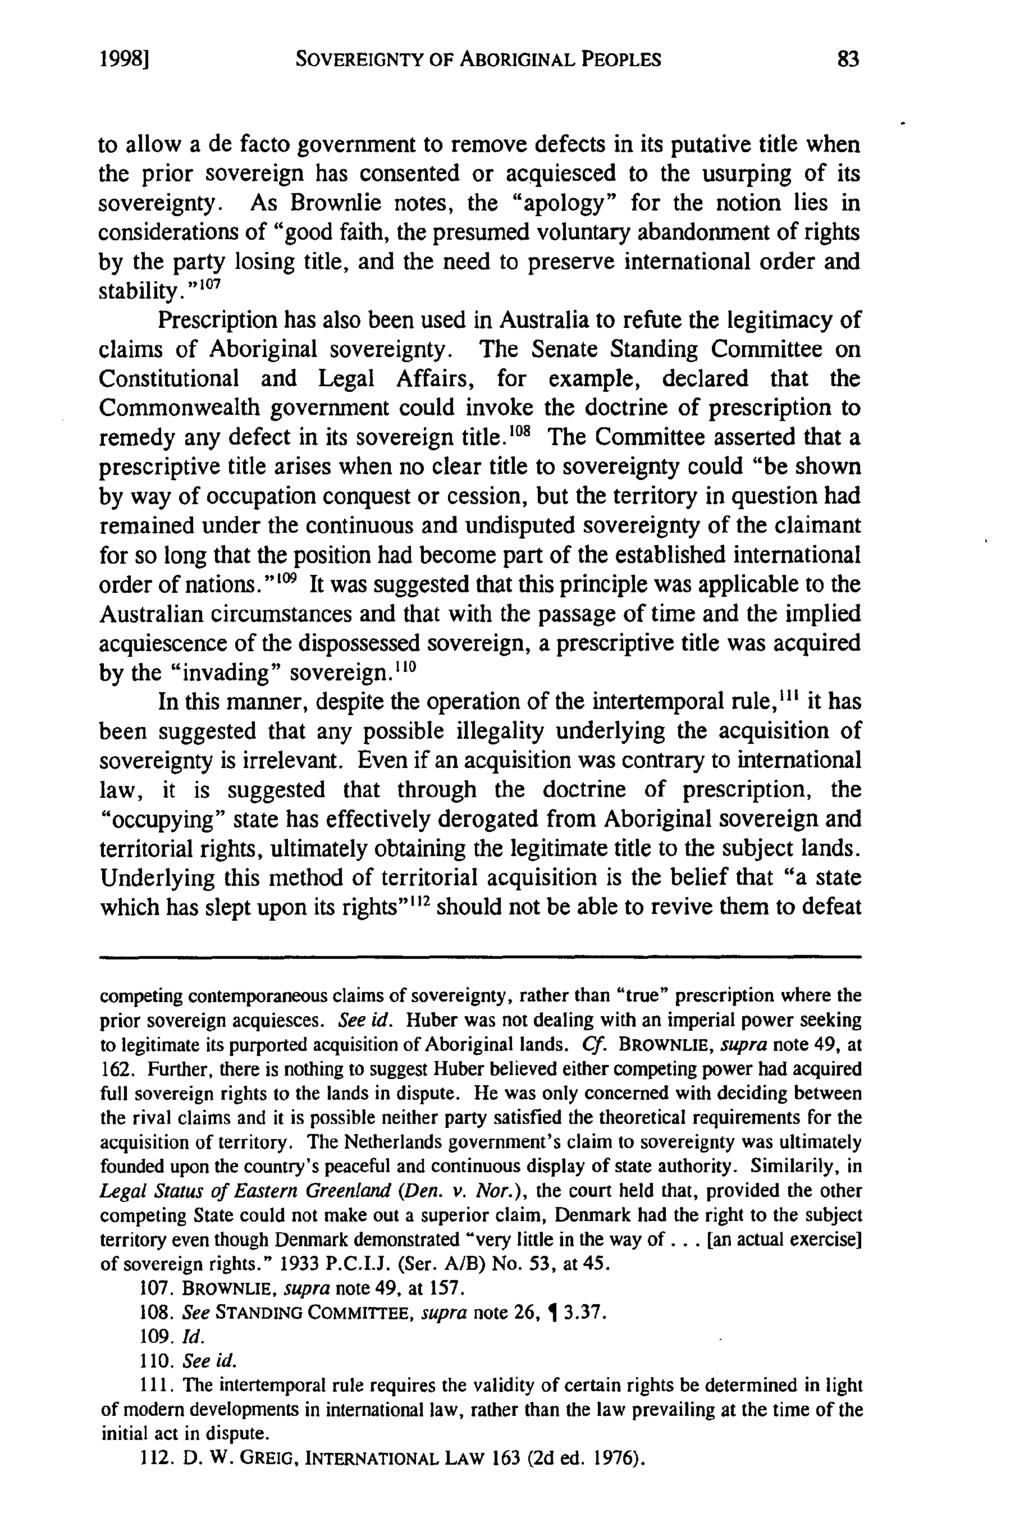 SOVEREIGNTY OF ABORIGINAL PEOPLES - PDF